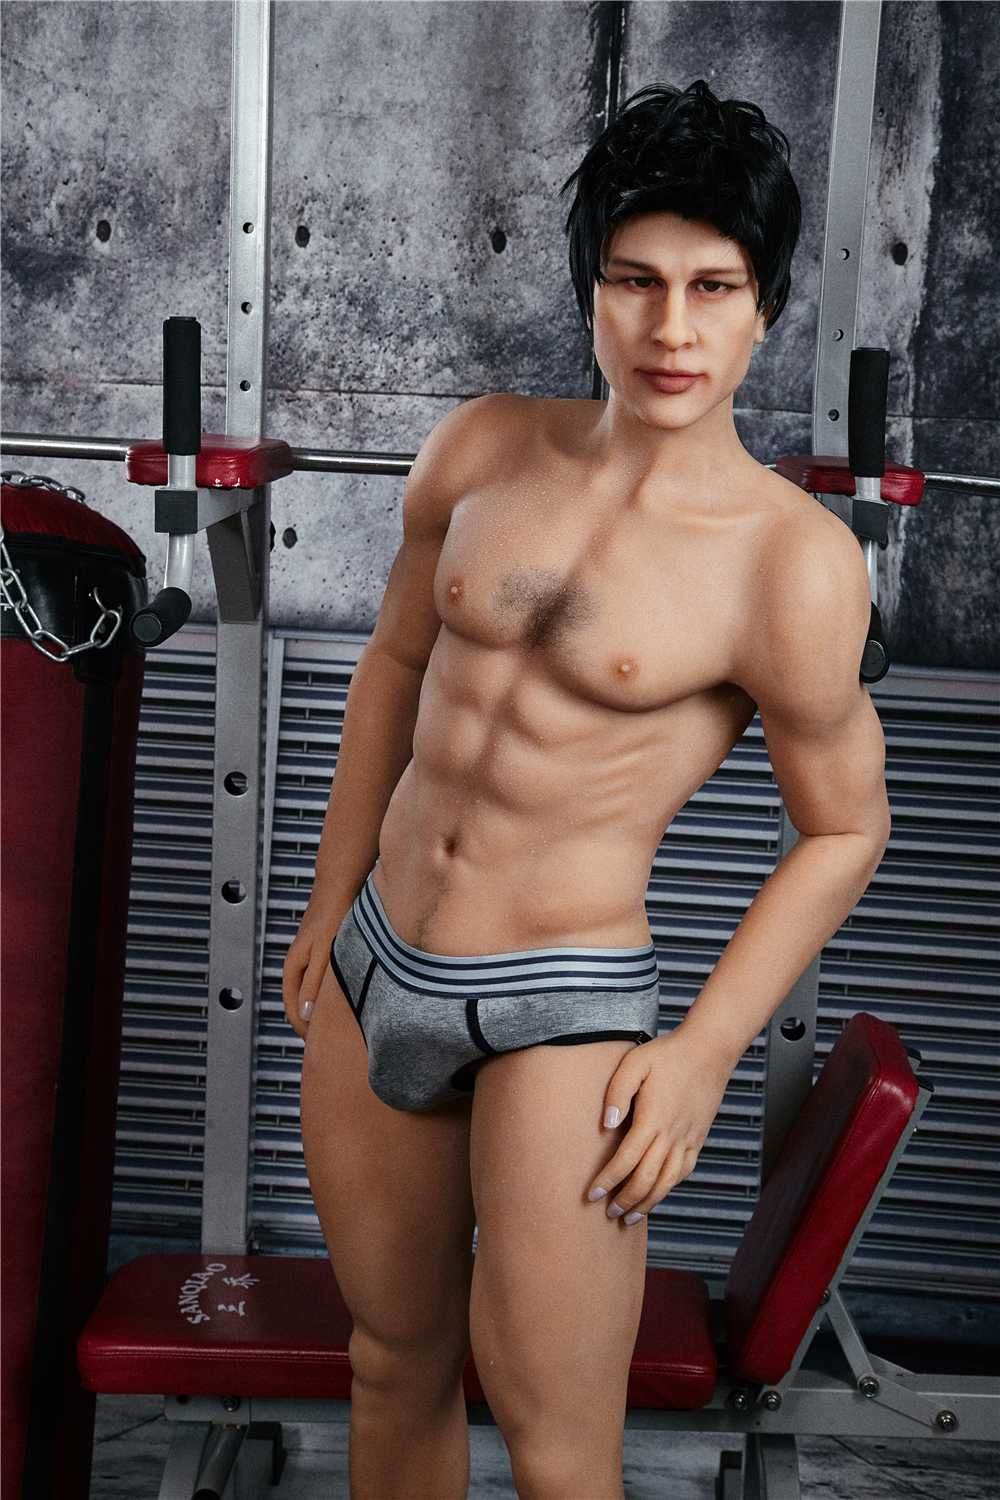 sex doll irontech homme 1 - Sex doll en france Adopte une doll